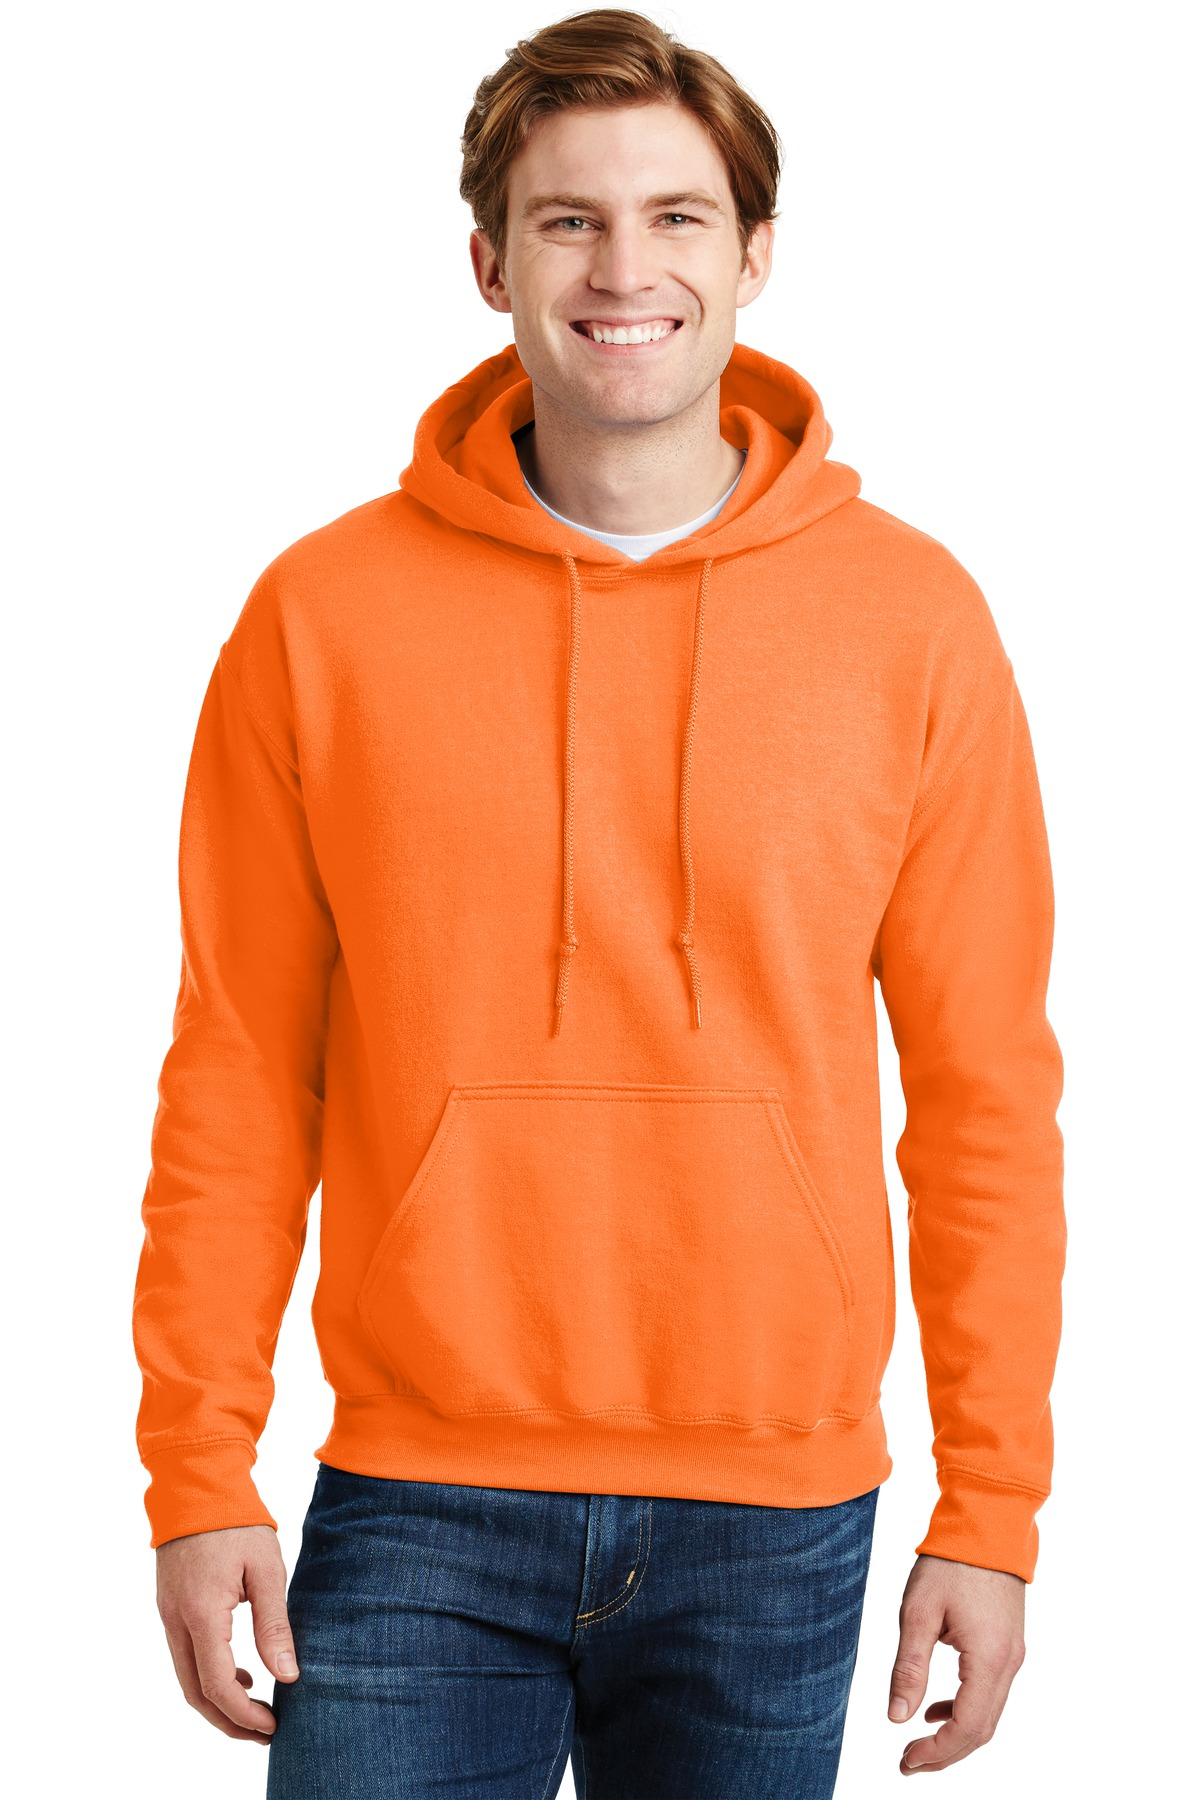 Gildan ®  - DryBlend ®  Pullover Hooded Sweatshirt.  12500 - S. Orange